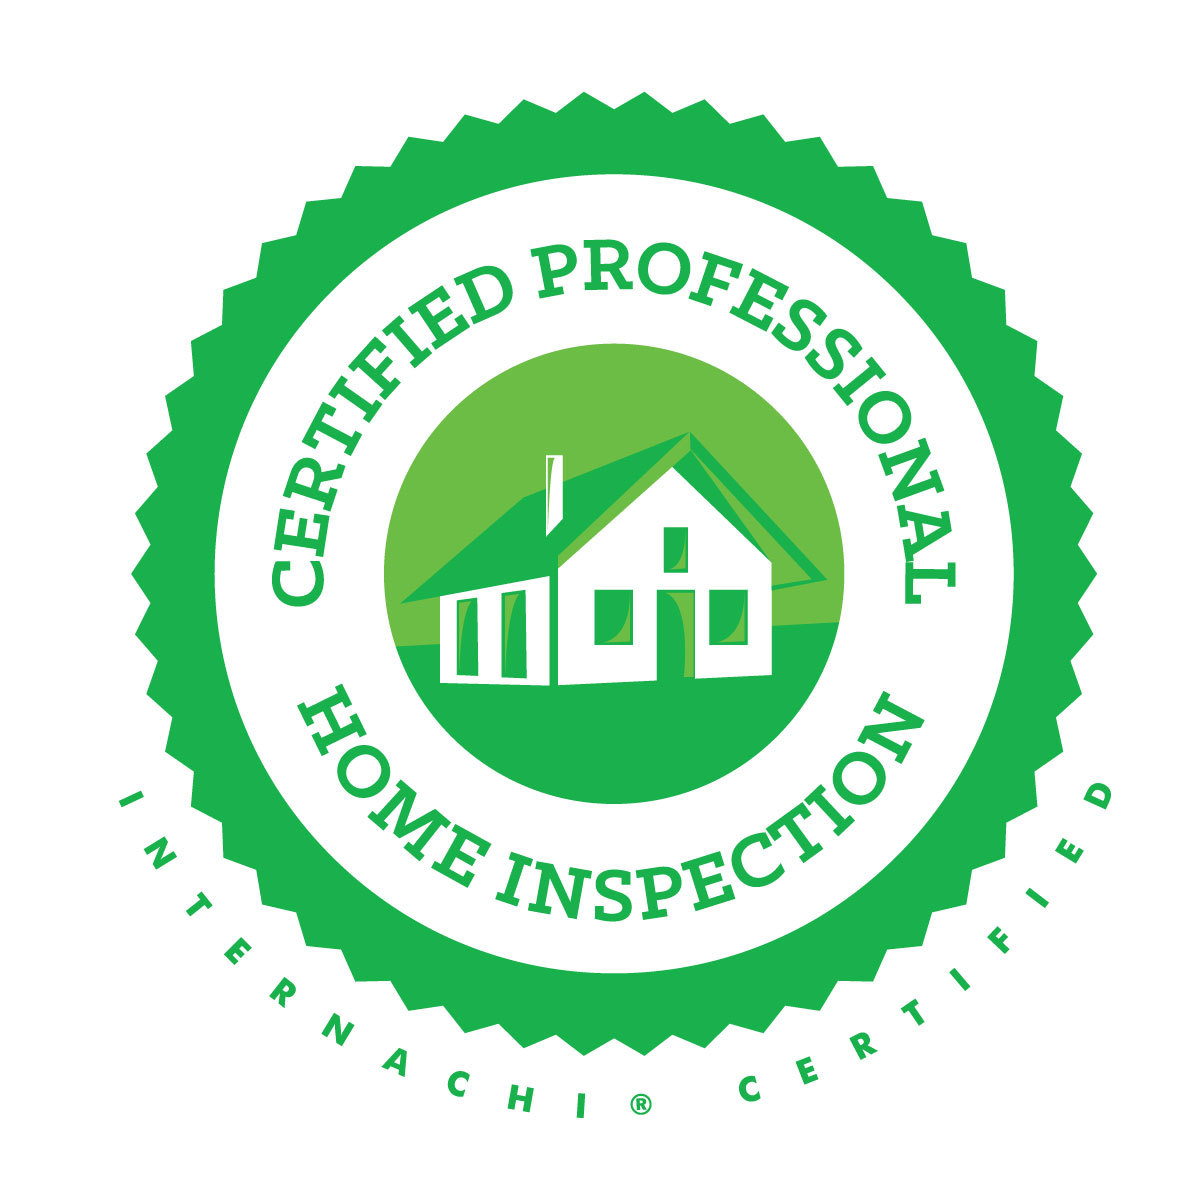 Certified professional home inspection logo %281%29